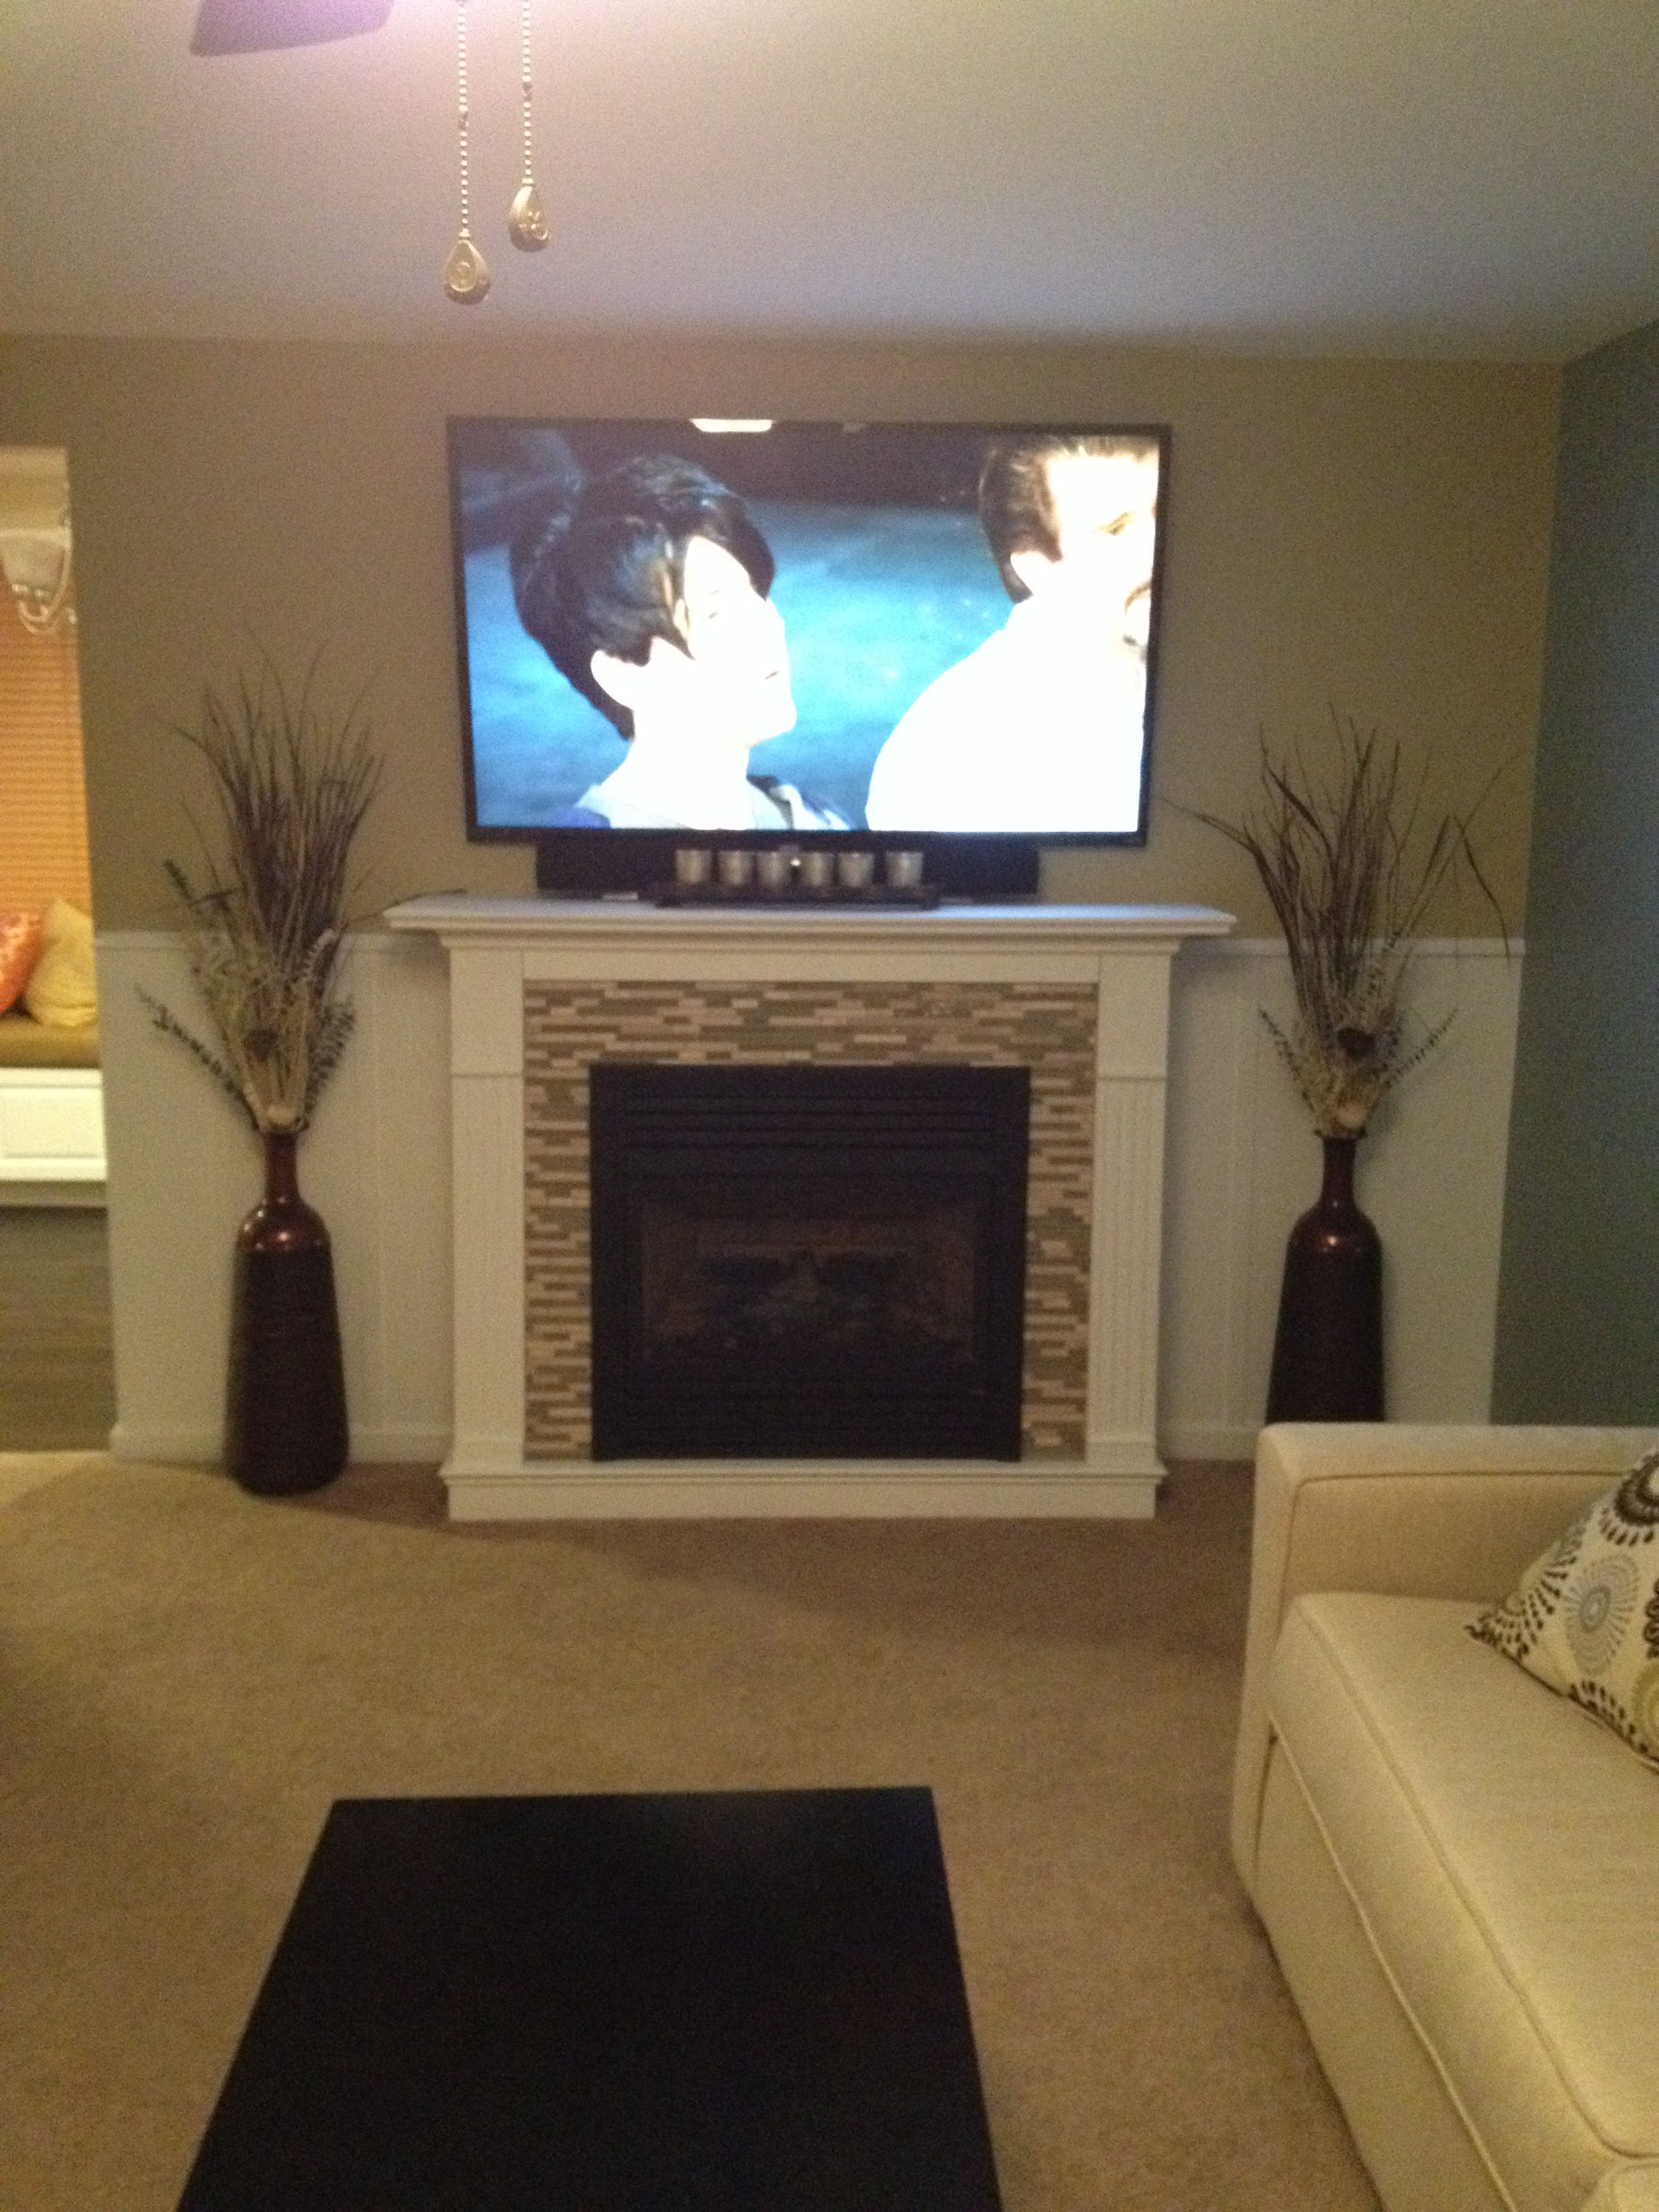 Diy Fireplace Ventless Gas Fireplace And Wall Moldings To Match Family Room Makeover New Homes Fireplace Surrounds